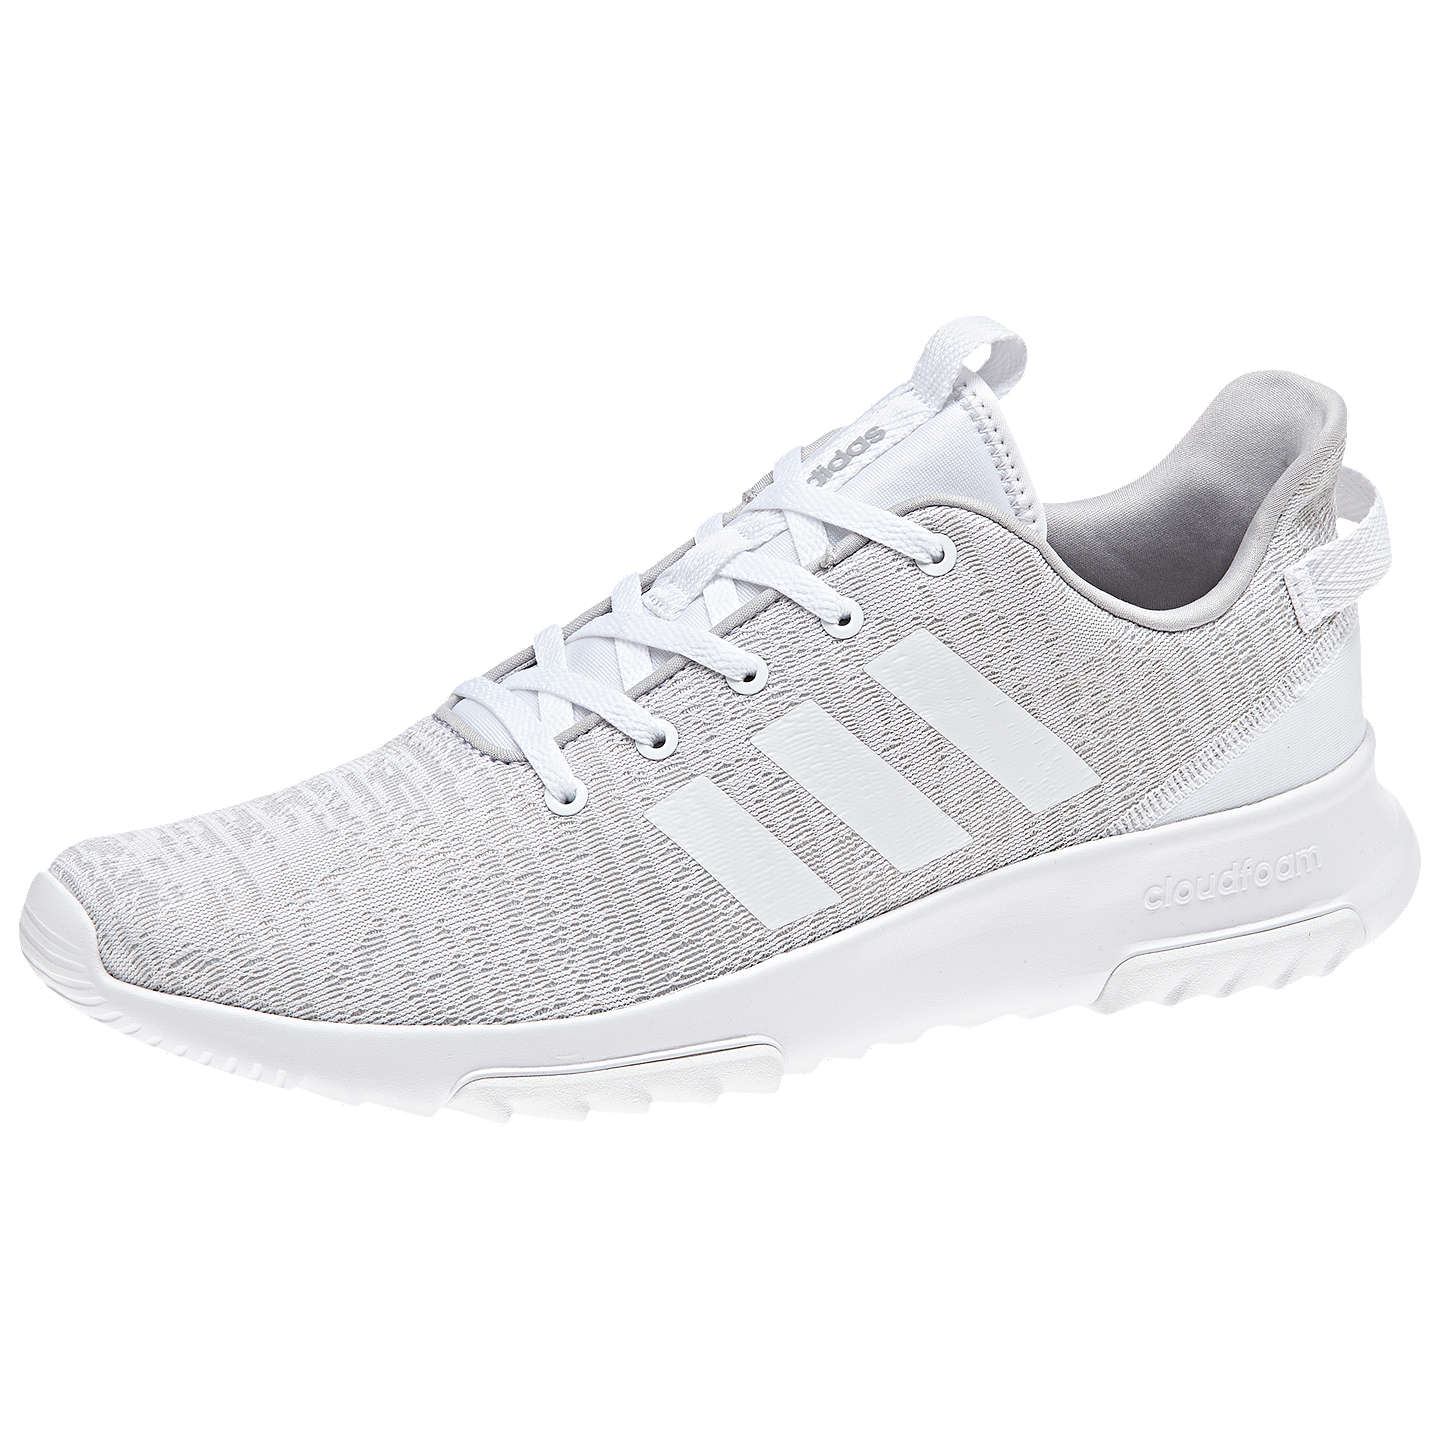 adidas cloudfoam racer tr mens trainers nz